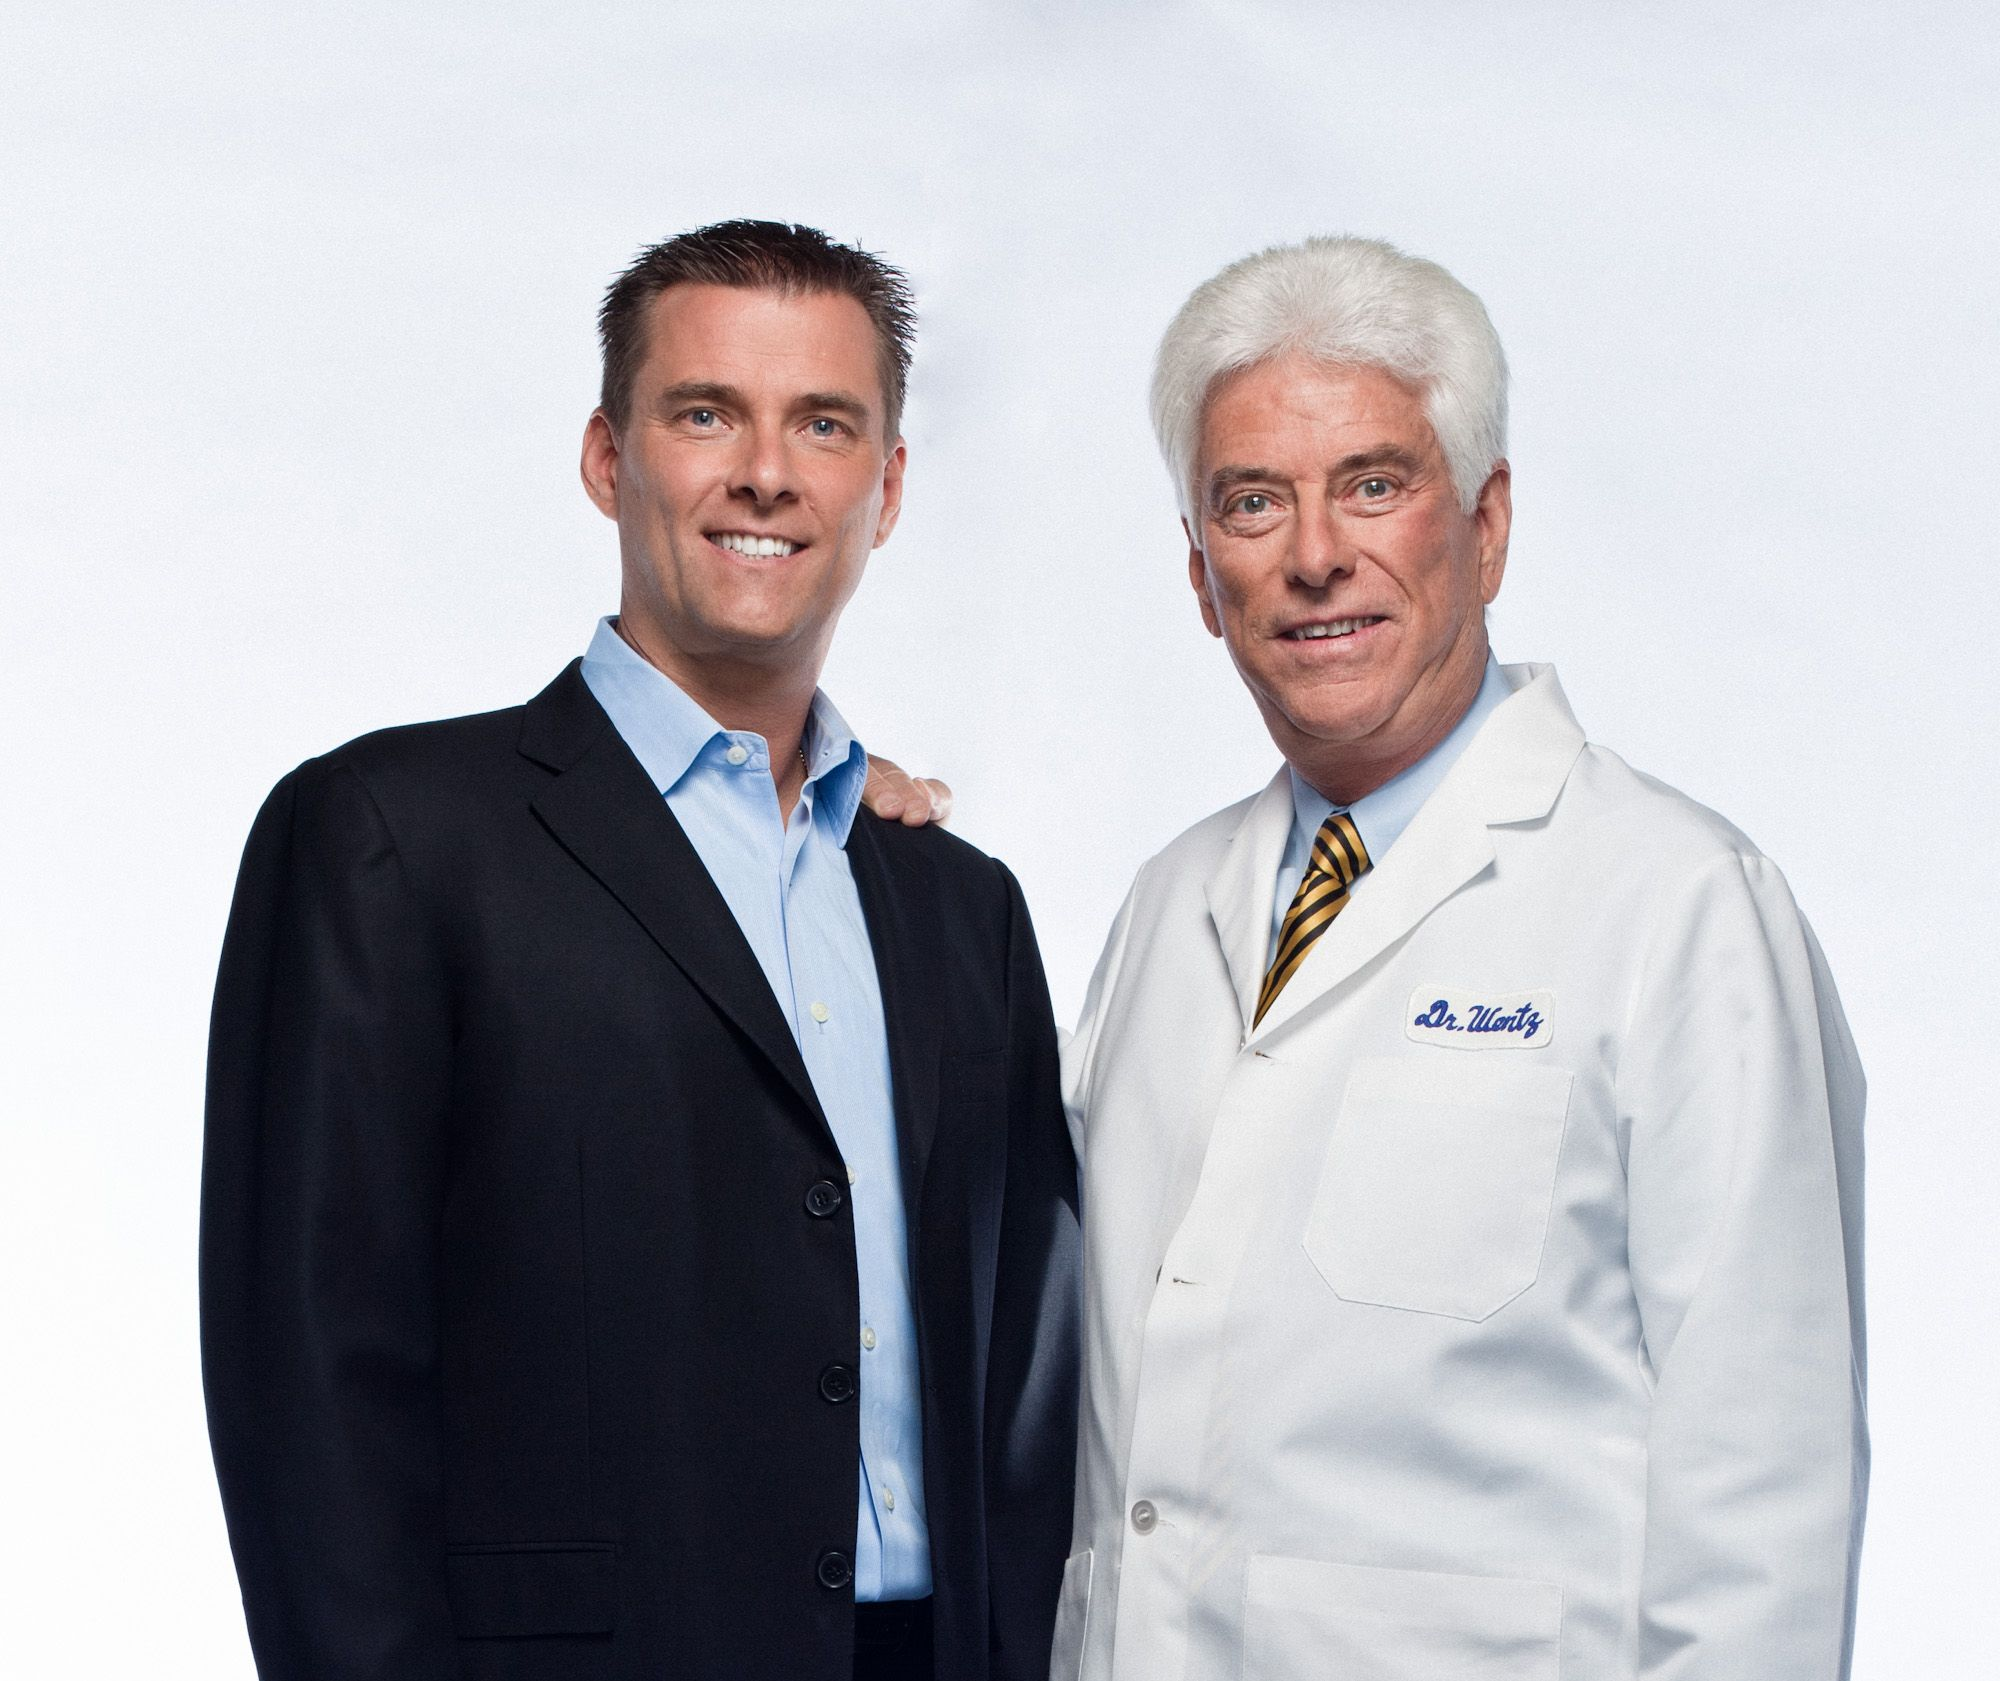 David Wentz And Dr Myron Wentz Of Usana By Utah Commercial Photographer Kim Guanzon Http